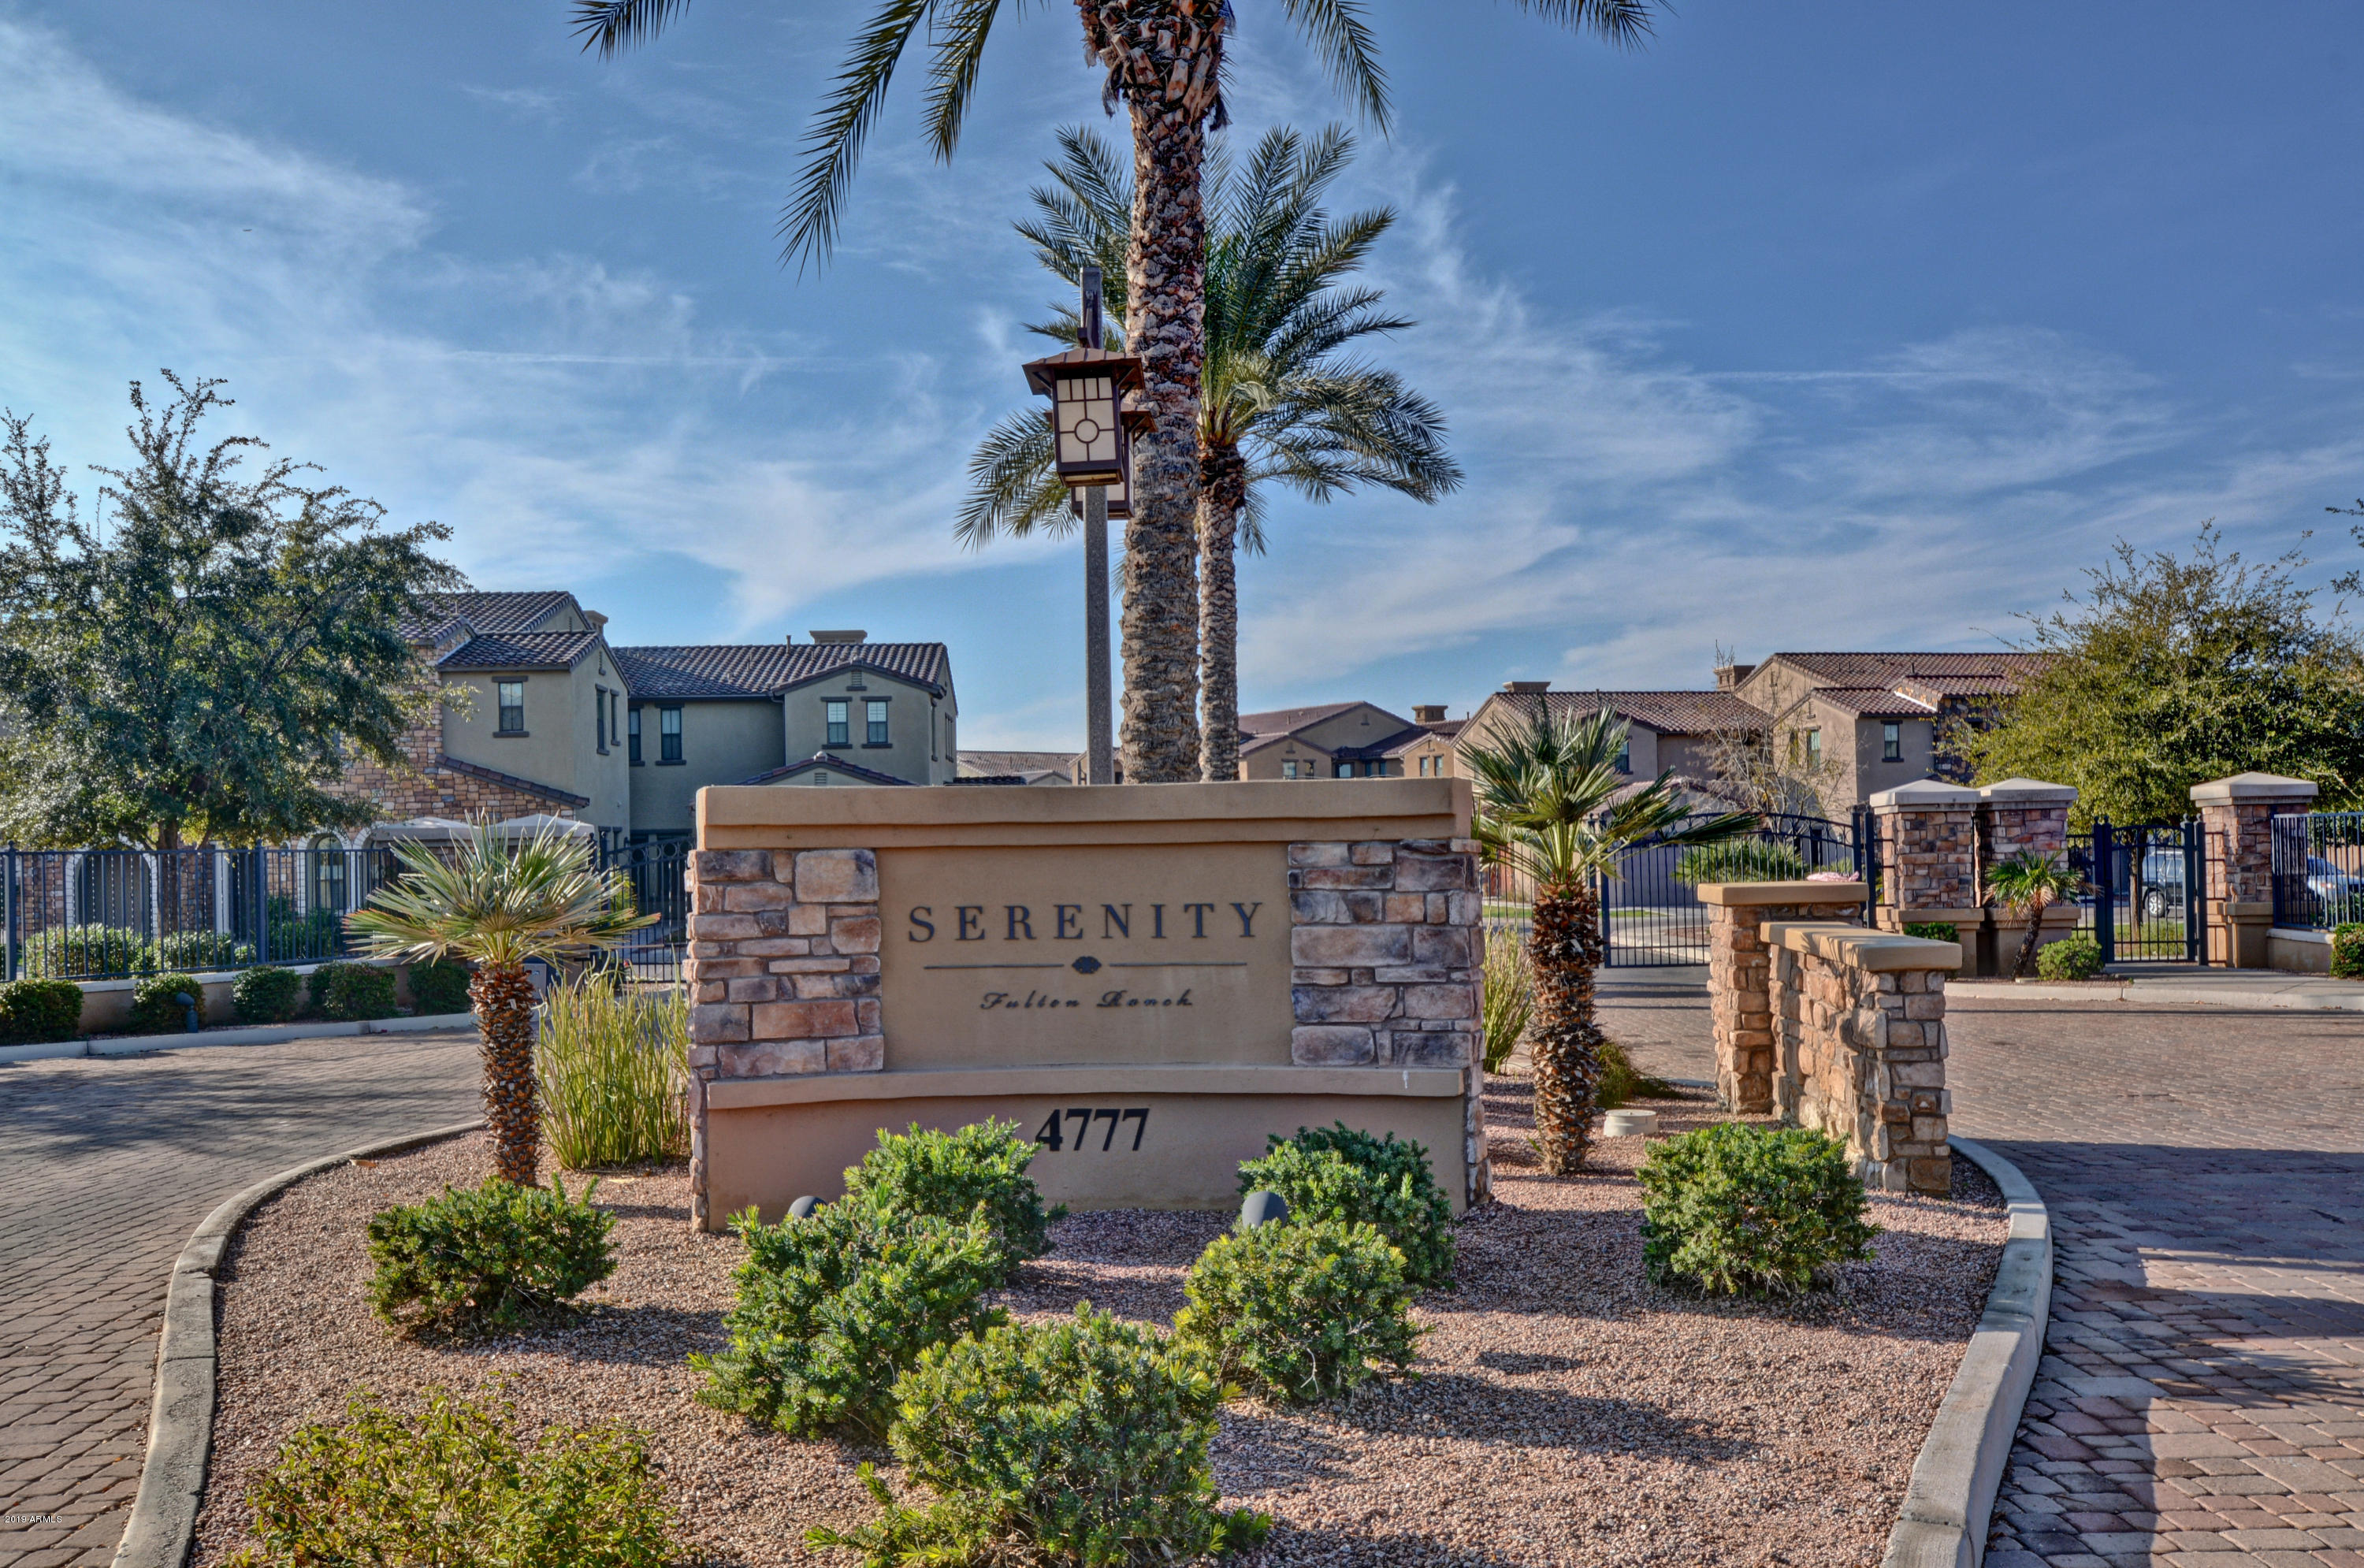 MLS 5868596 4777 S FULTON RANCH Boulevard Unit 2101 Building 3, Chandler, AZ Chandler AZ Fulton Ranch